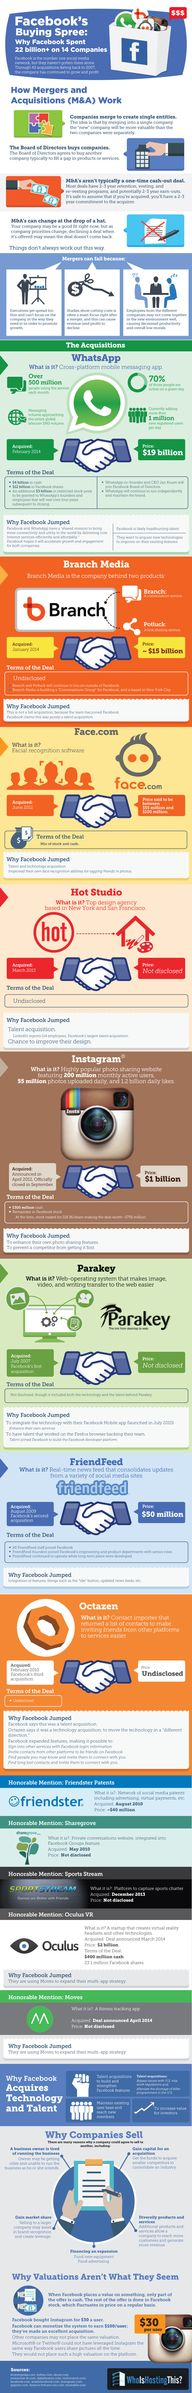 Why Facebook Spent $